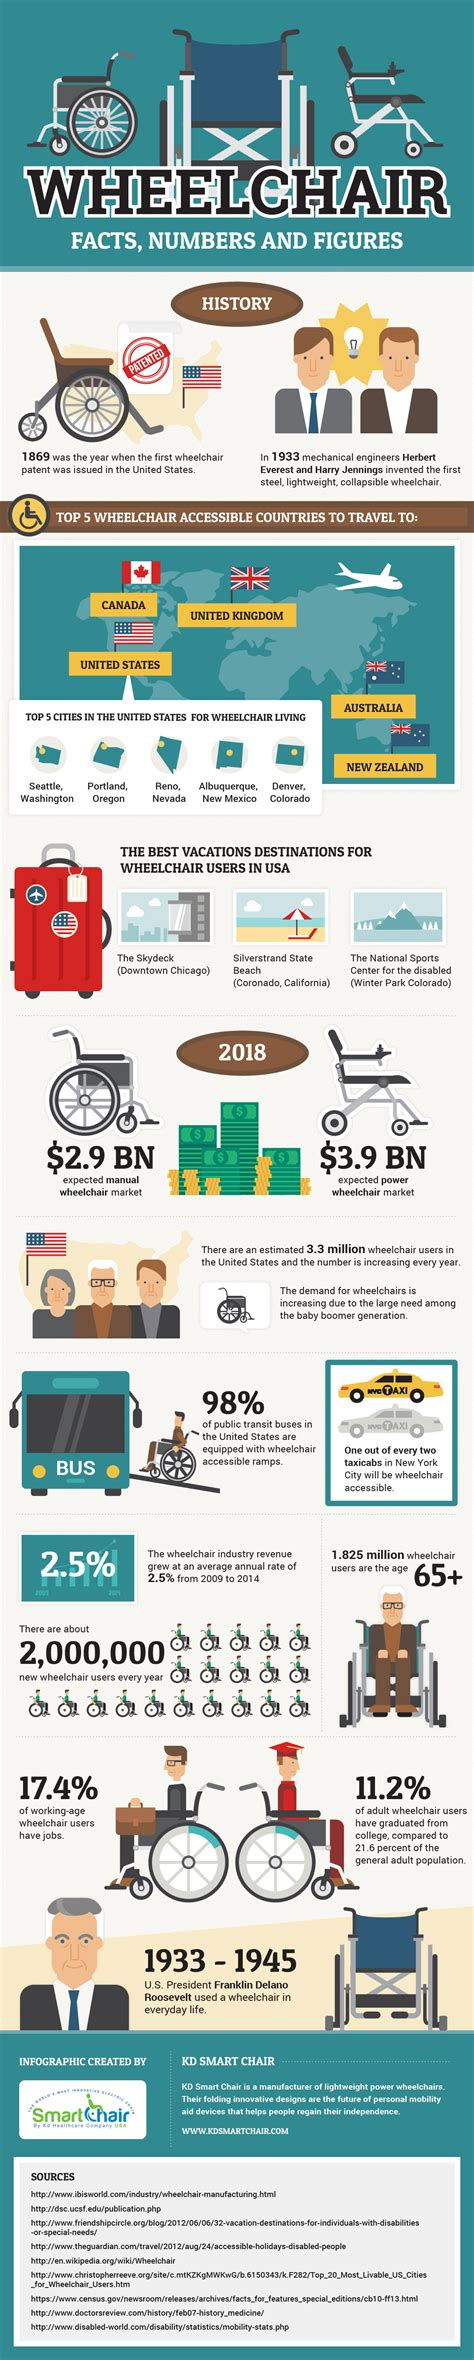 wheelchair facts numbers and figures infographic